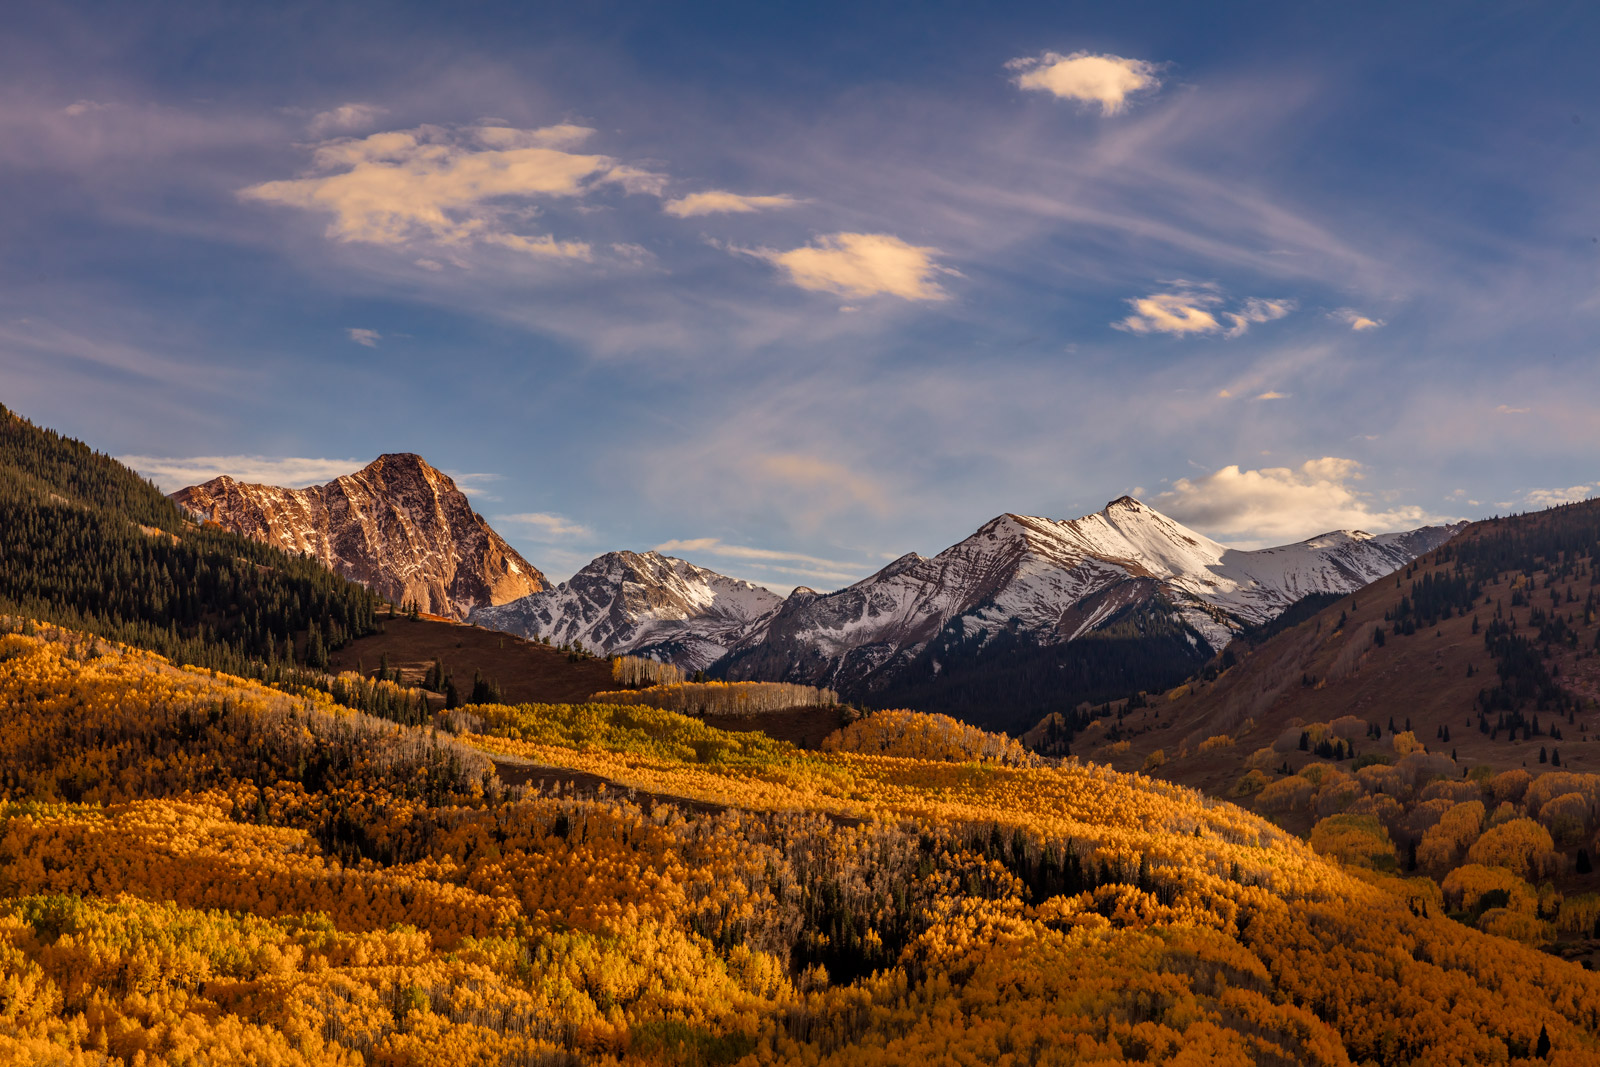 A Limited Edition, Fine Art photograph of Capitol Peak and the valley of brilliant fall colors below Capitol Peak and other mountains...